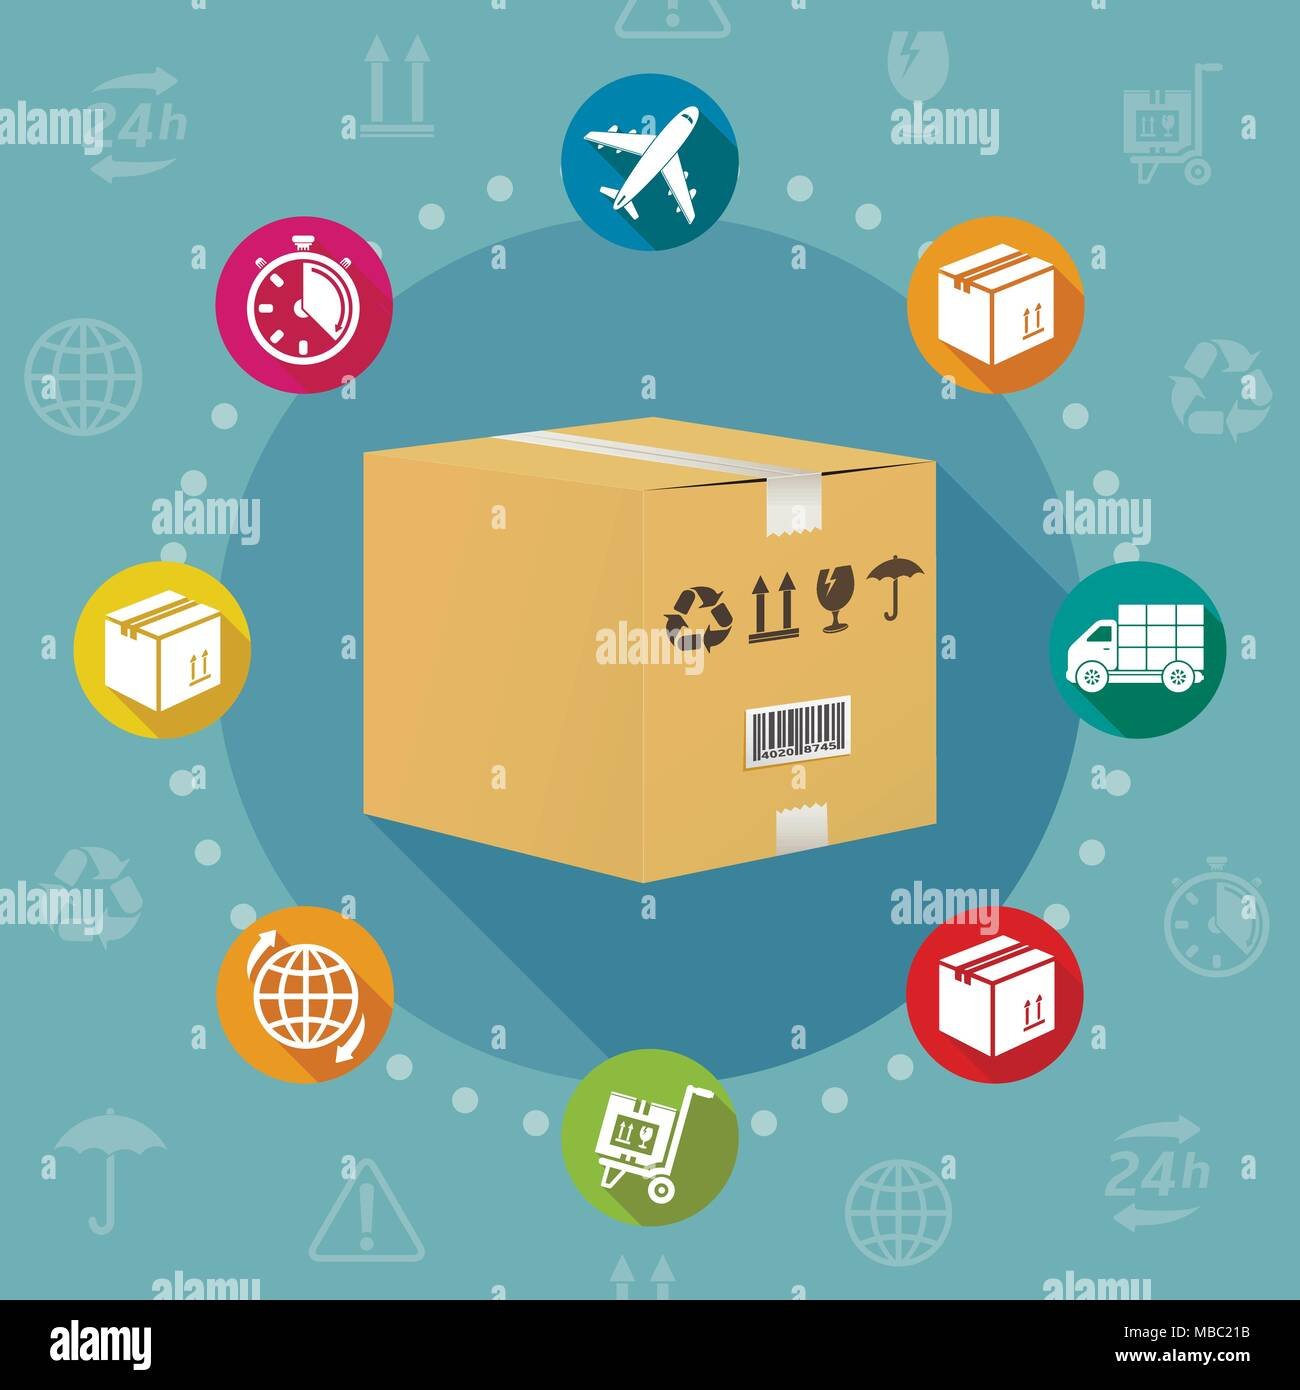 Logistics and shipment flat design style vector concept - Stock Image